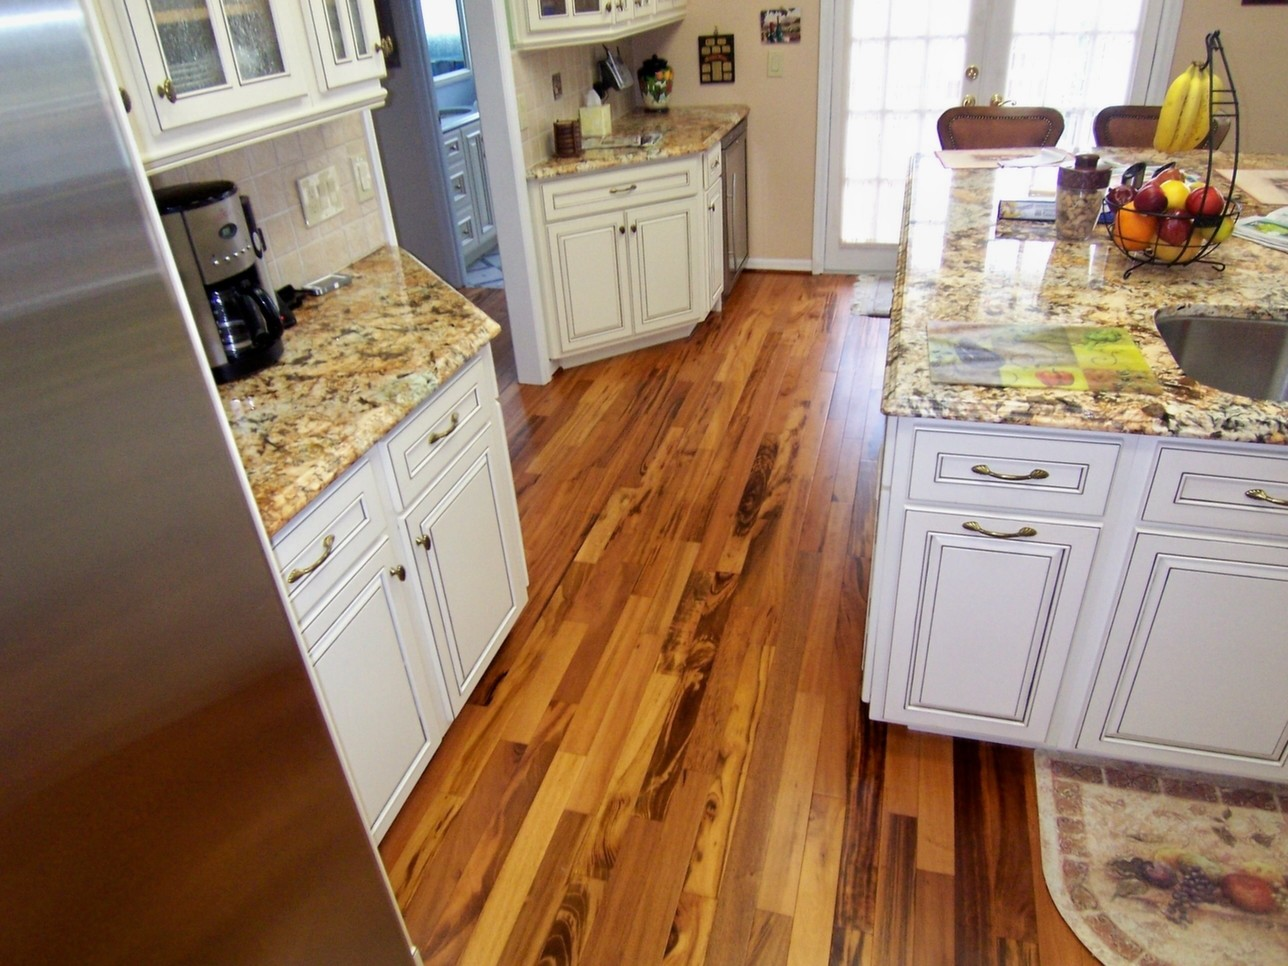 ... Tigerwood Plank Room kitchen Hardwood Flooring ... - Tigerwood Plank Hardwood Flooring Prefinished Solid Hardwood